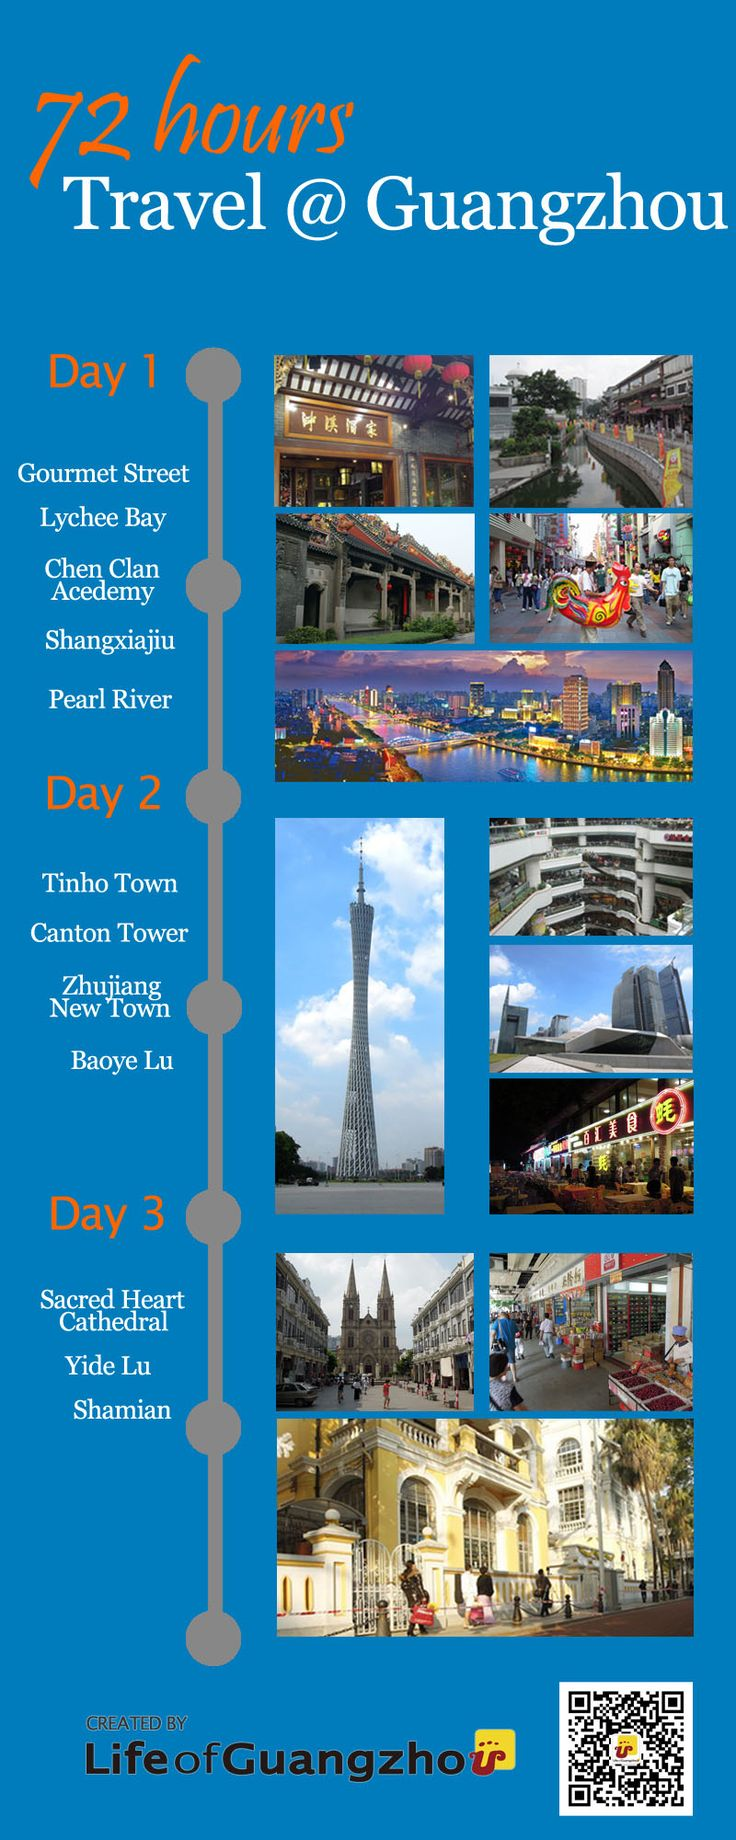 72 Hour tour of Guangzhou